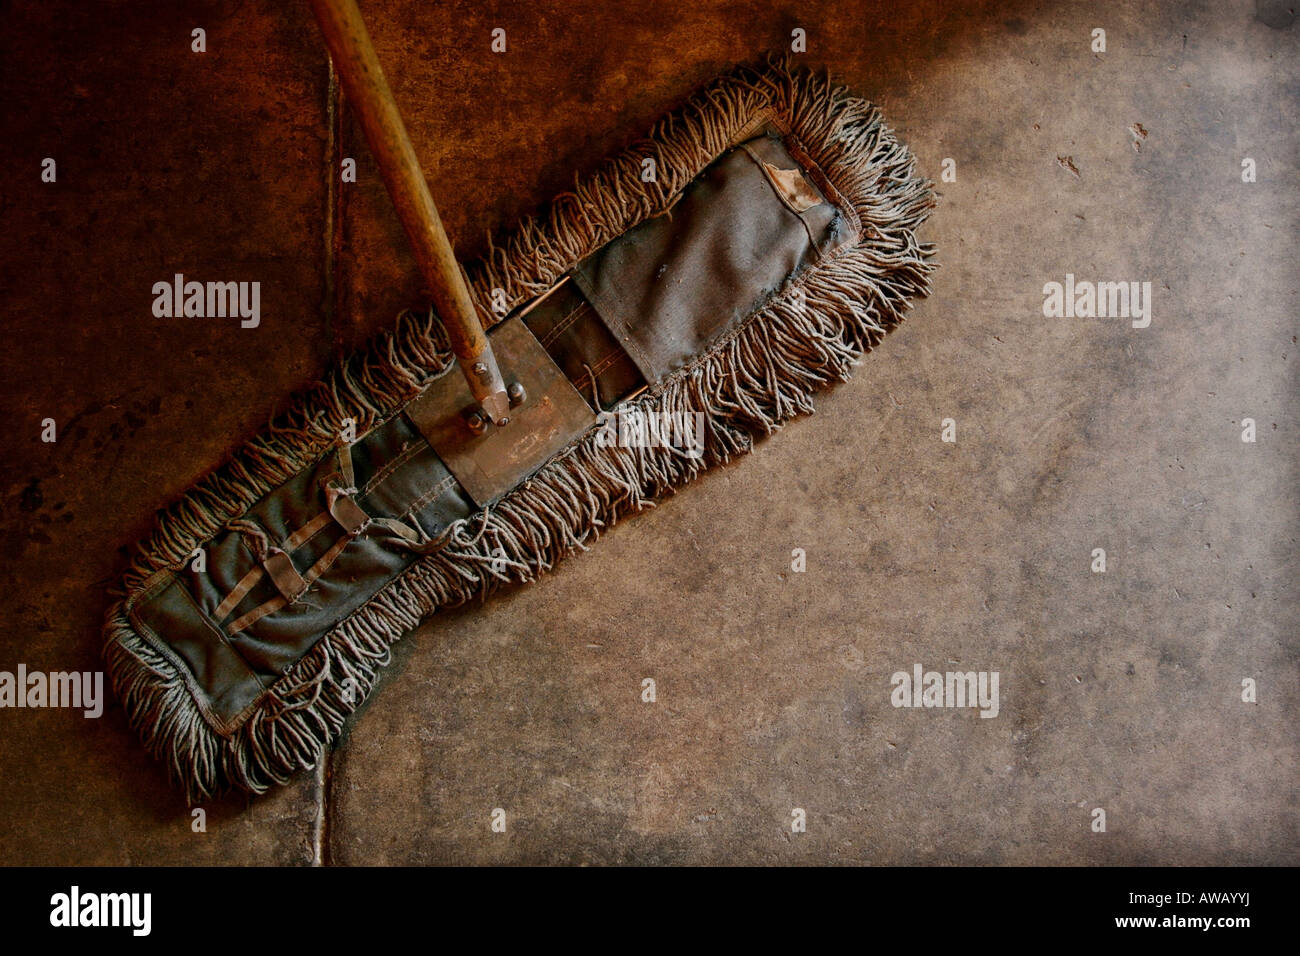 A dirty mop - Stock Image